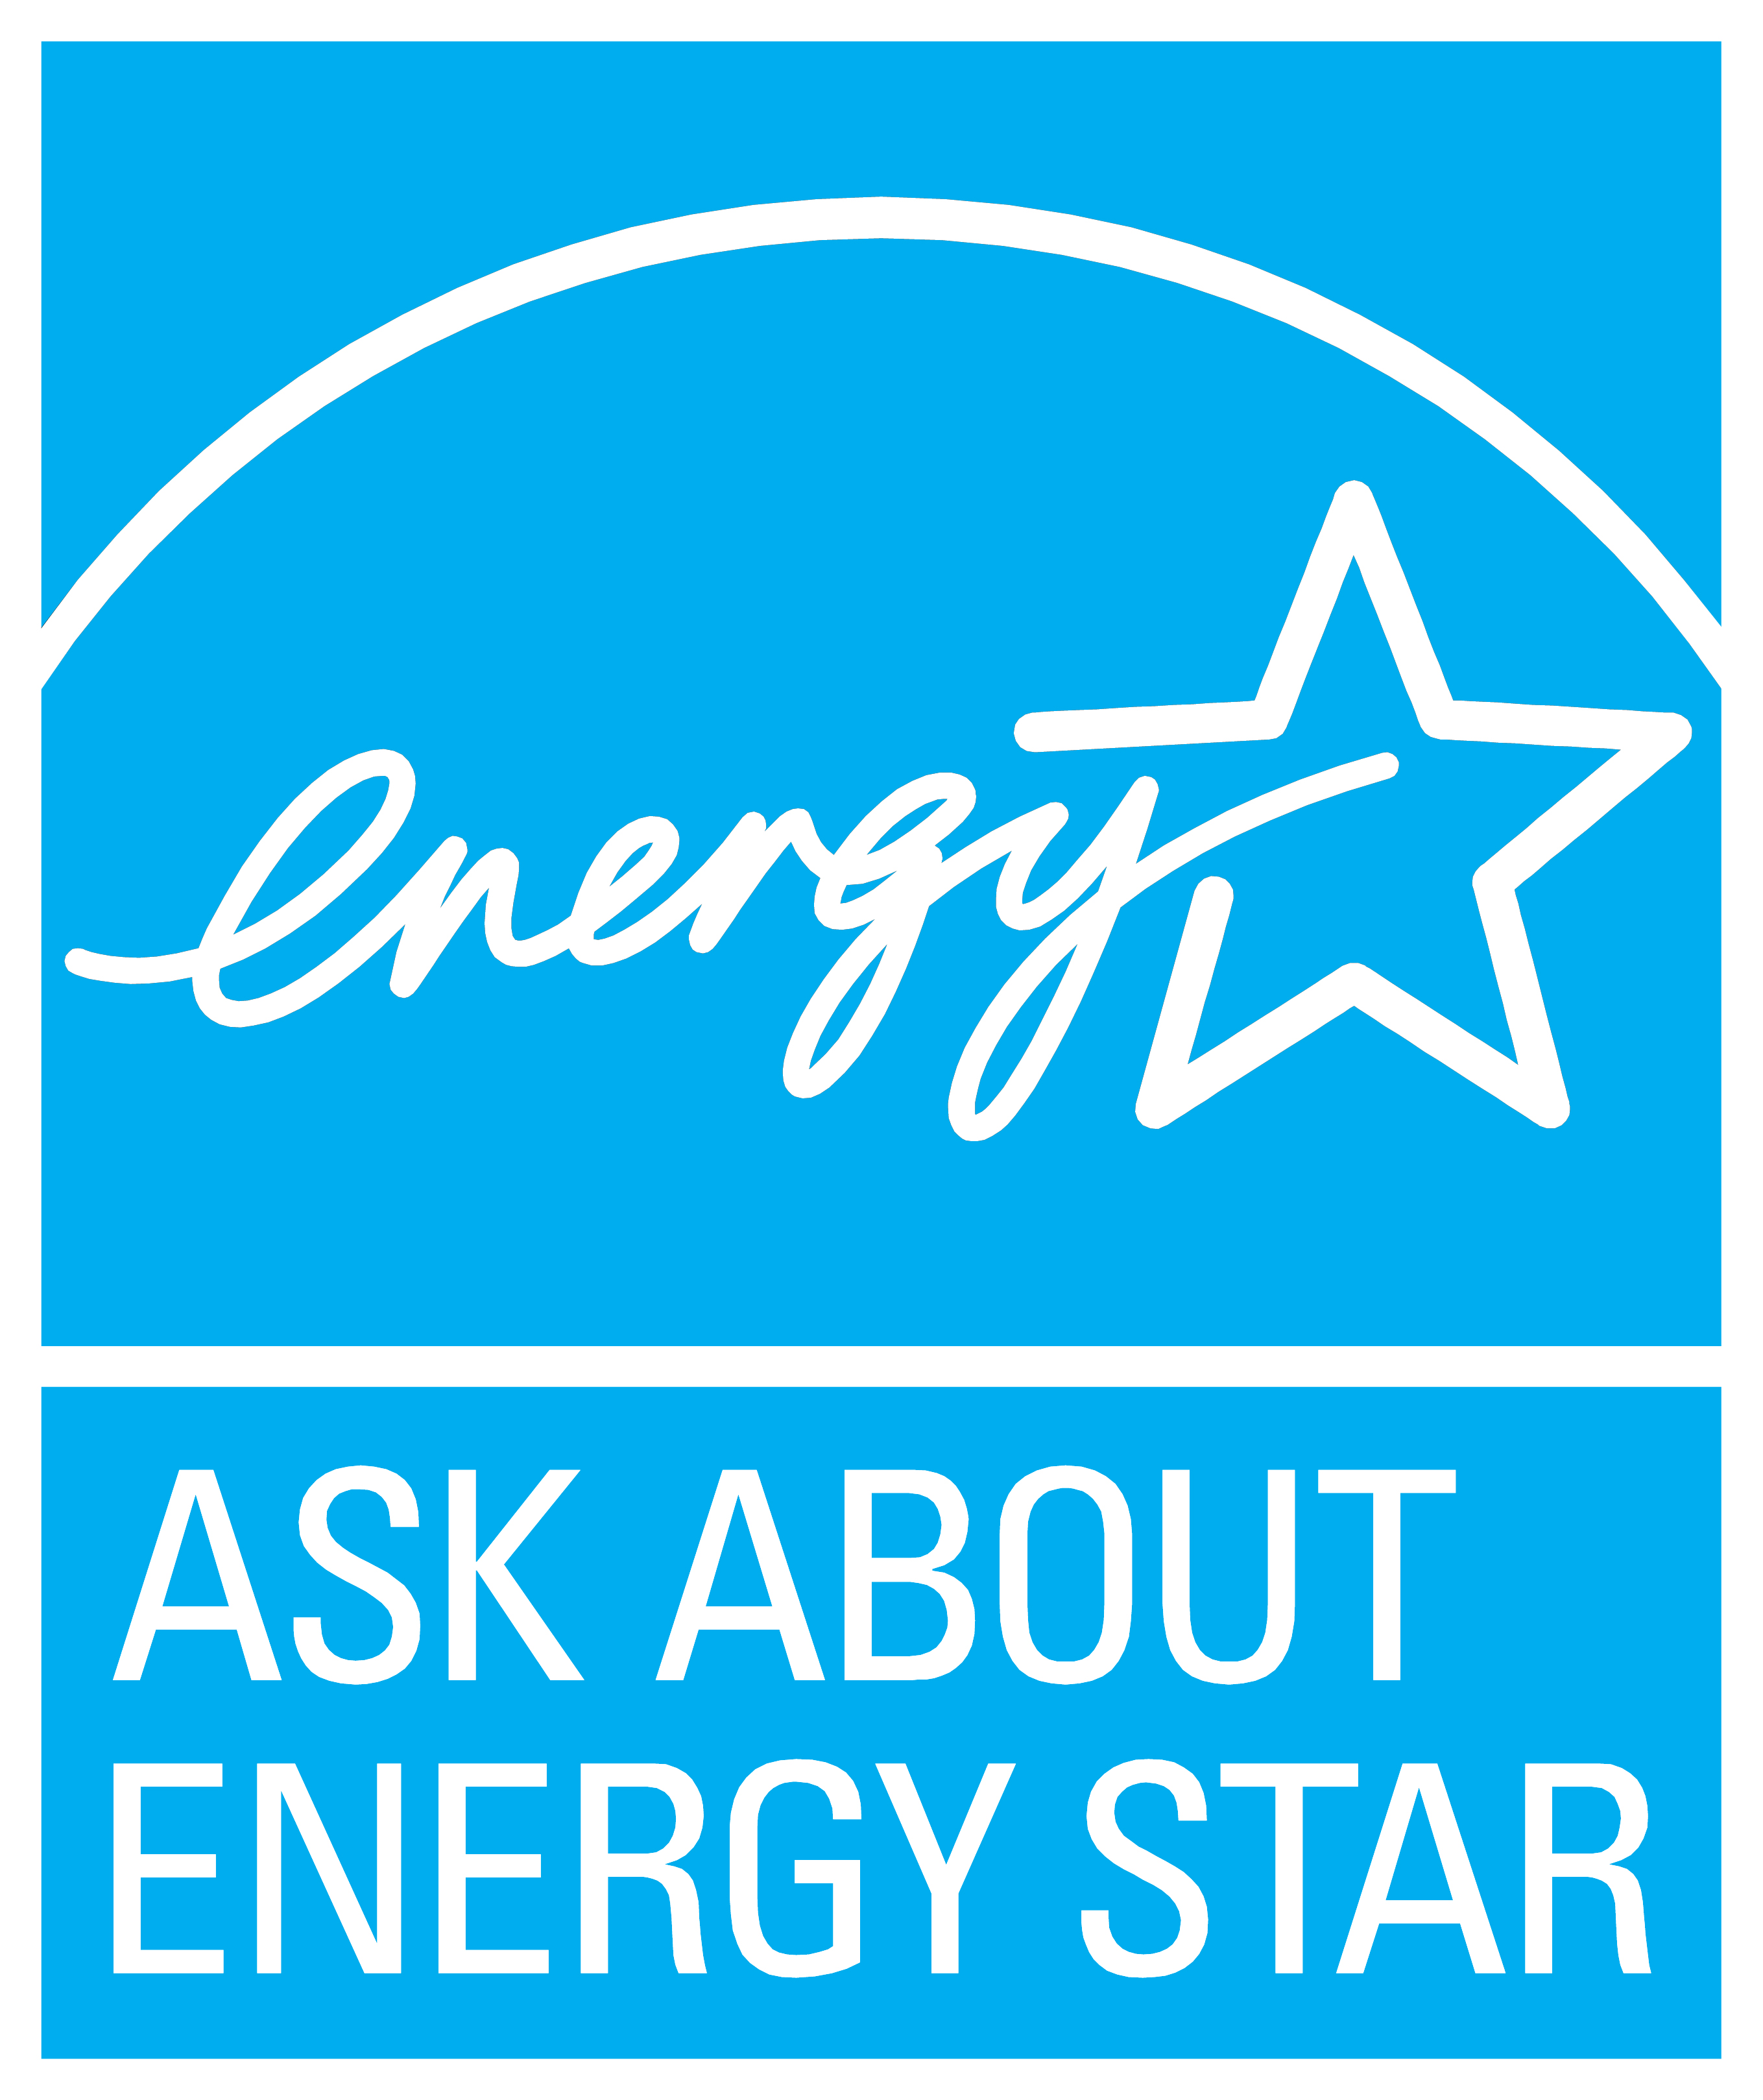 energystar askabout?sfvrsn=153744c0_2 energy efficient gsx16 air conditioner from goodman  at webbmarketing.co